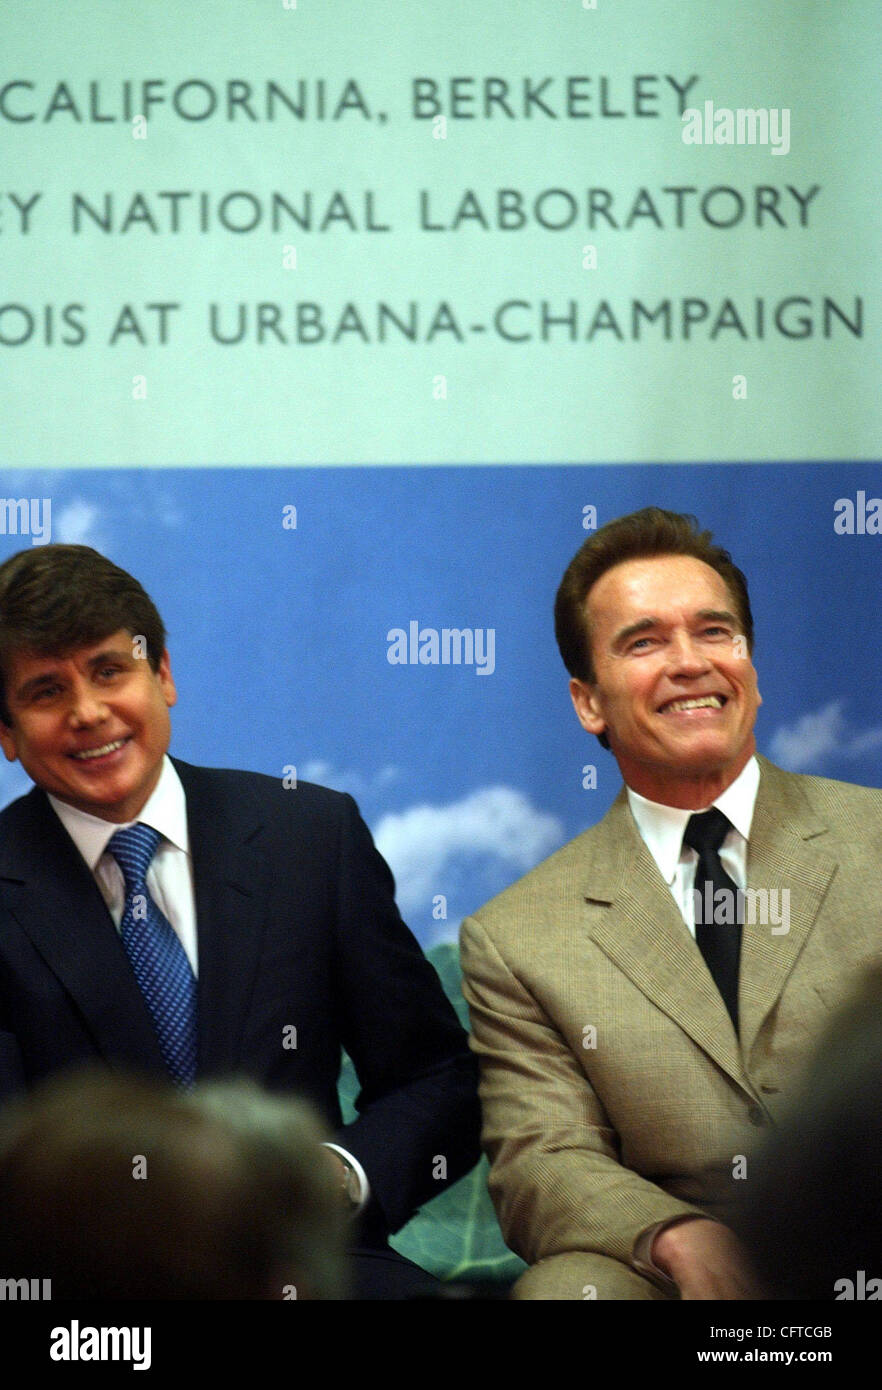 Joining in a multi-million dollar announcement are Illinois Governor Rod Blagojevich and Calif. Governor Arnold Stock Photo